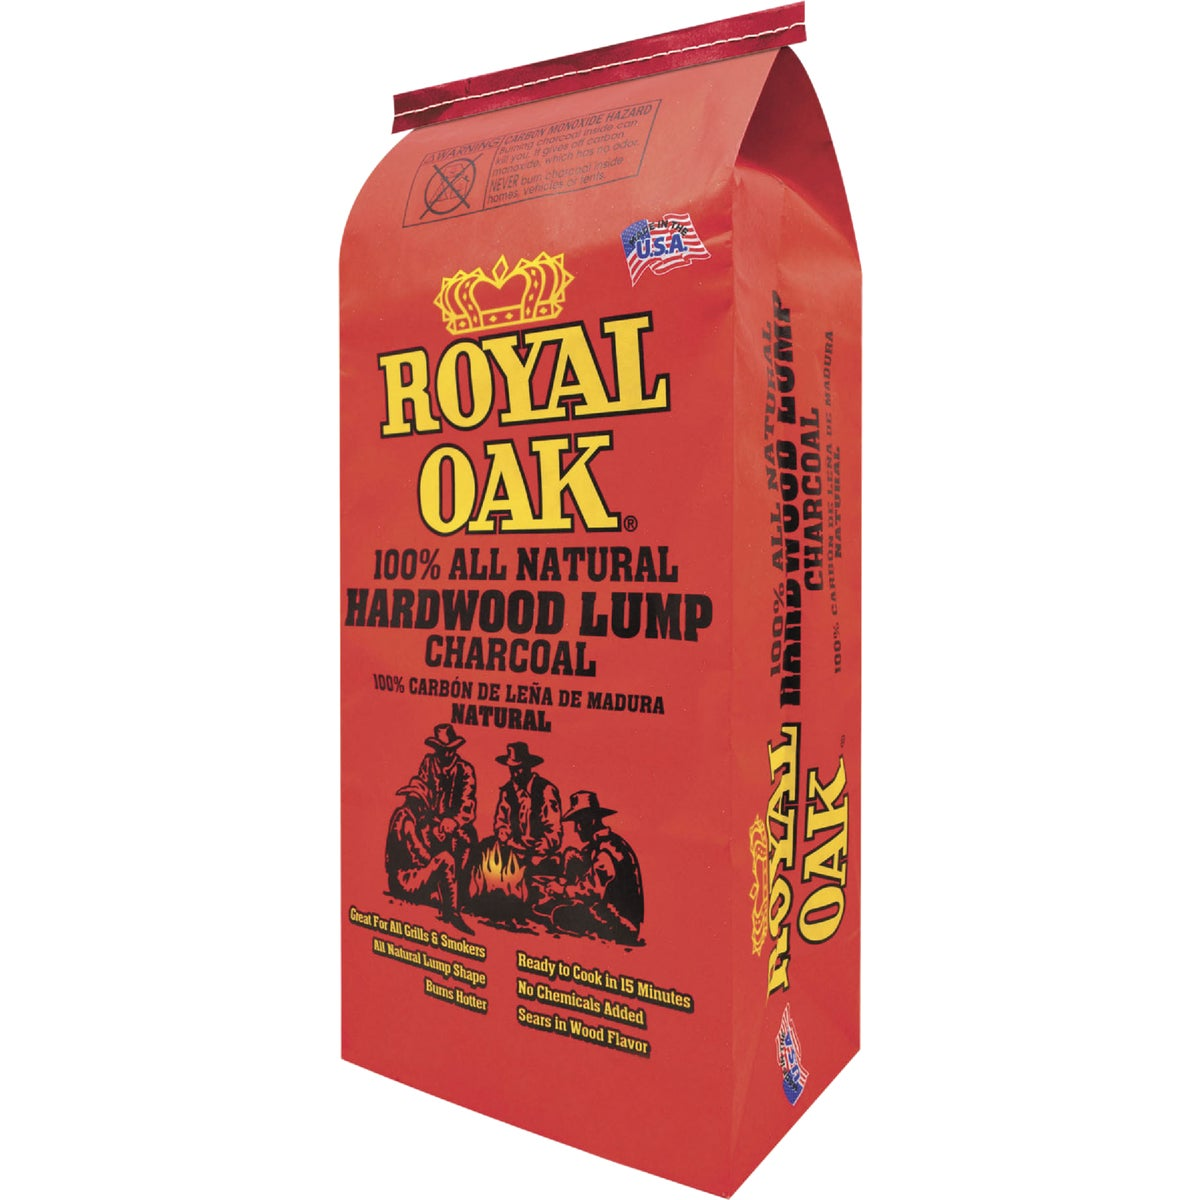 17.6# NAT LUMP CHARCOAL - 195-228-017 by Royal Oak